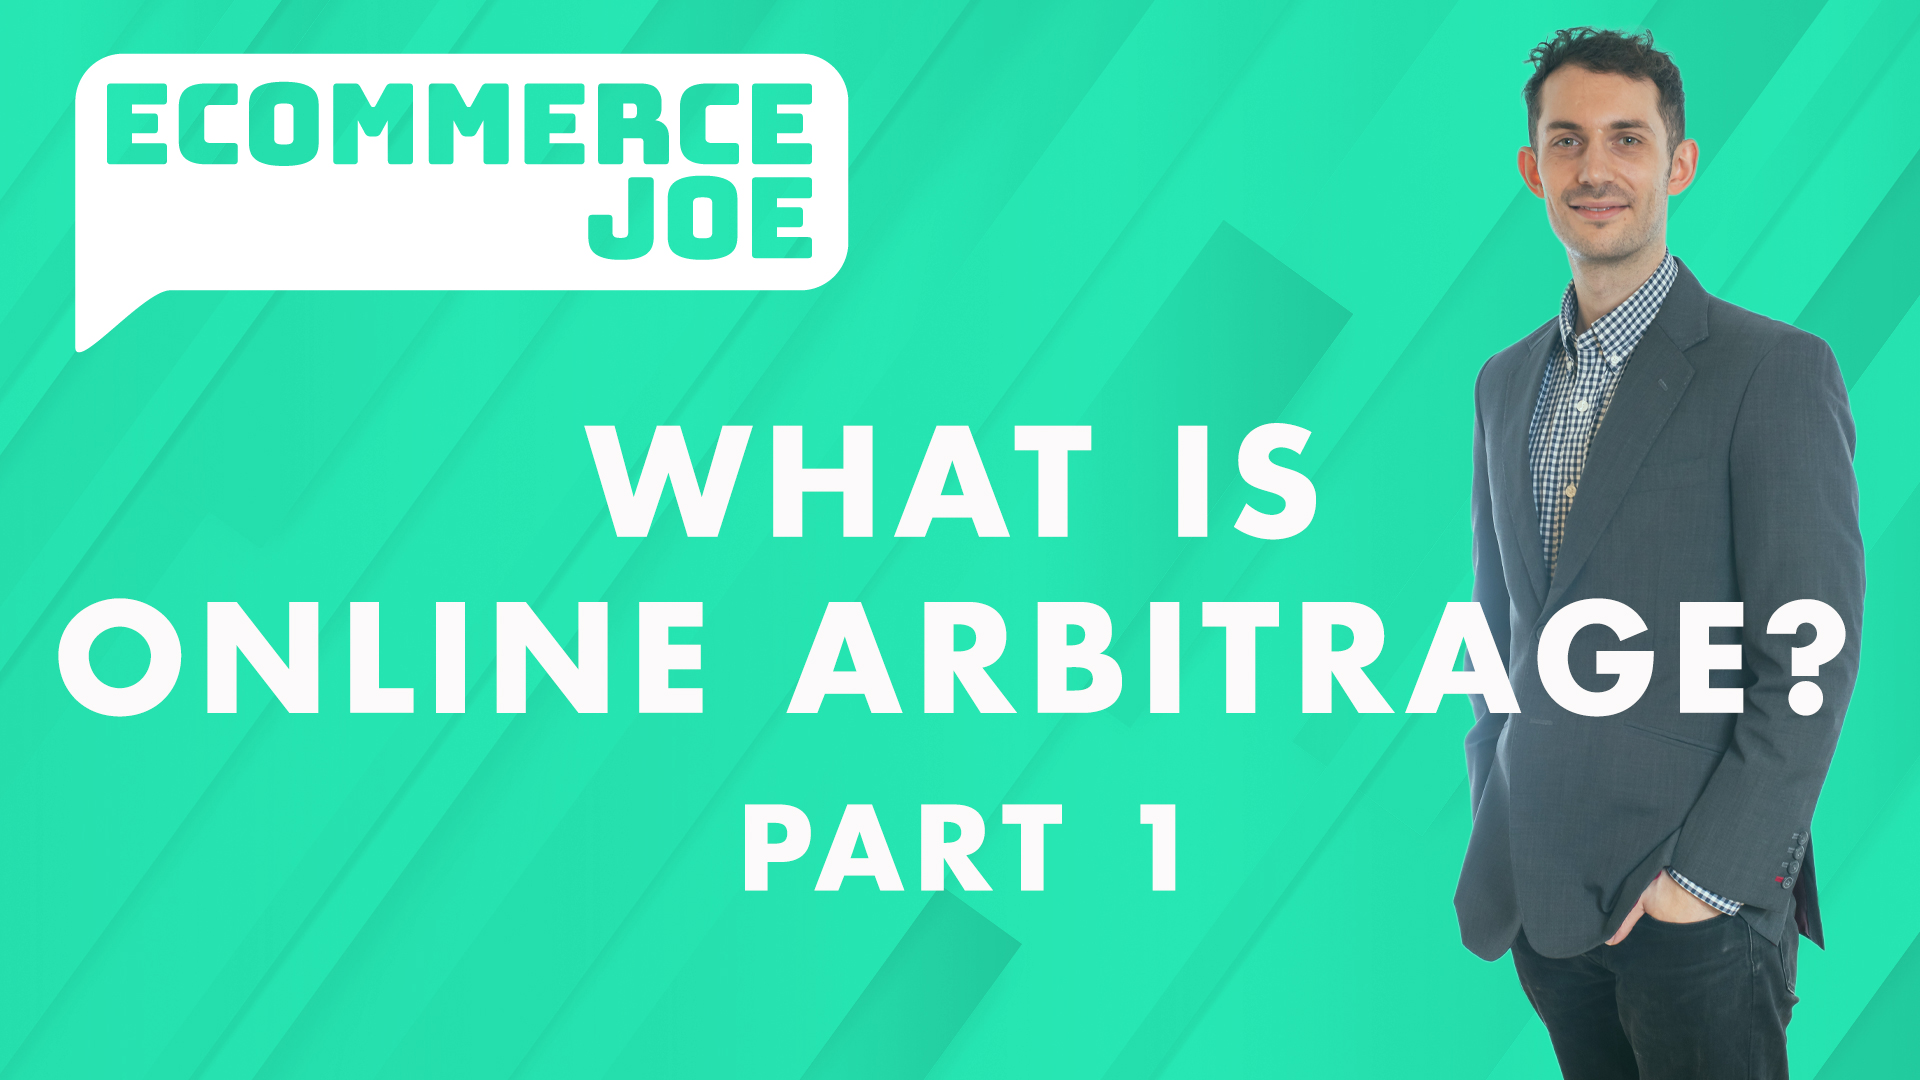 What is ONLINE ARBITRAGE? Part 1 | Learn the basics and get an overview of Online Arbitrage.